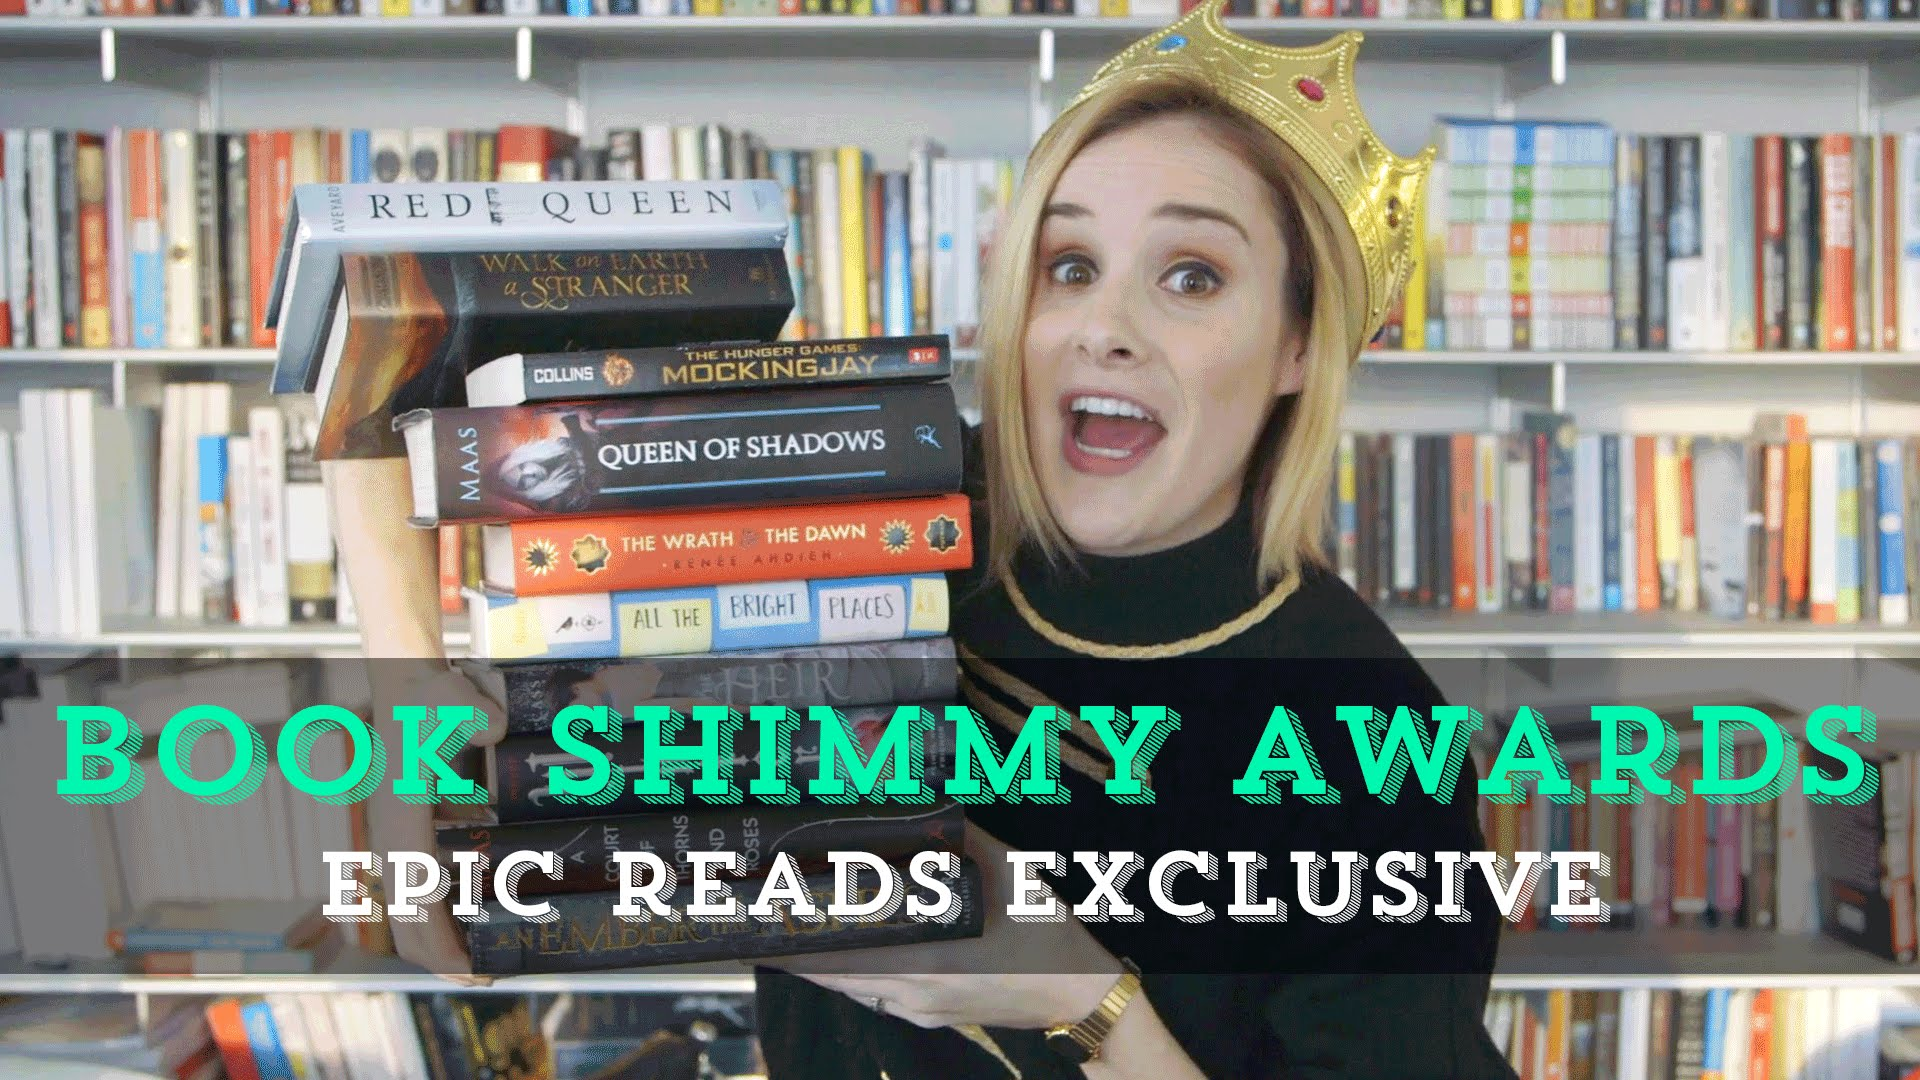 The Winners Have Been Announced for the 2015 *Book Shimmy* Awards!